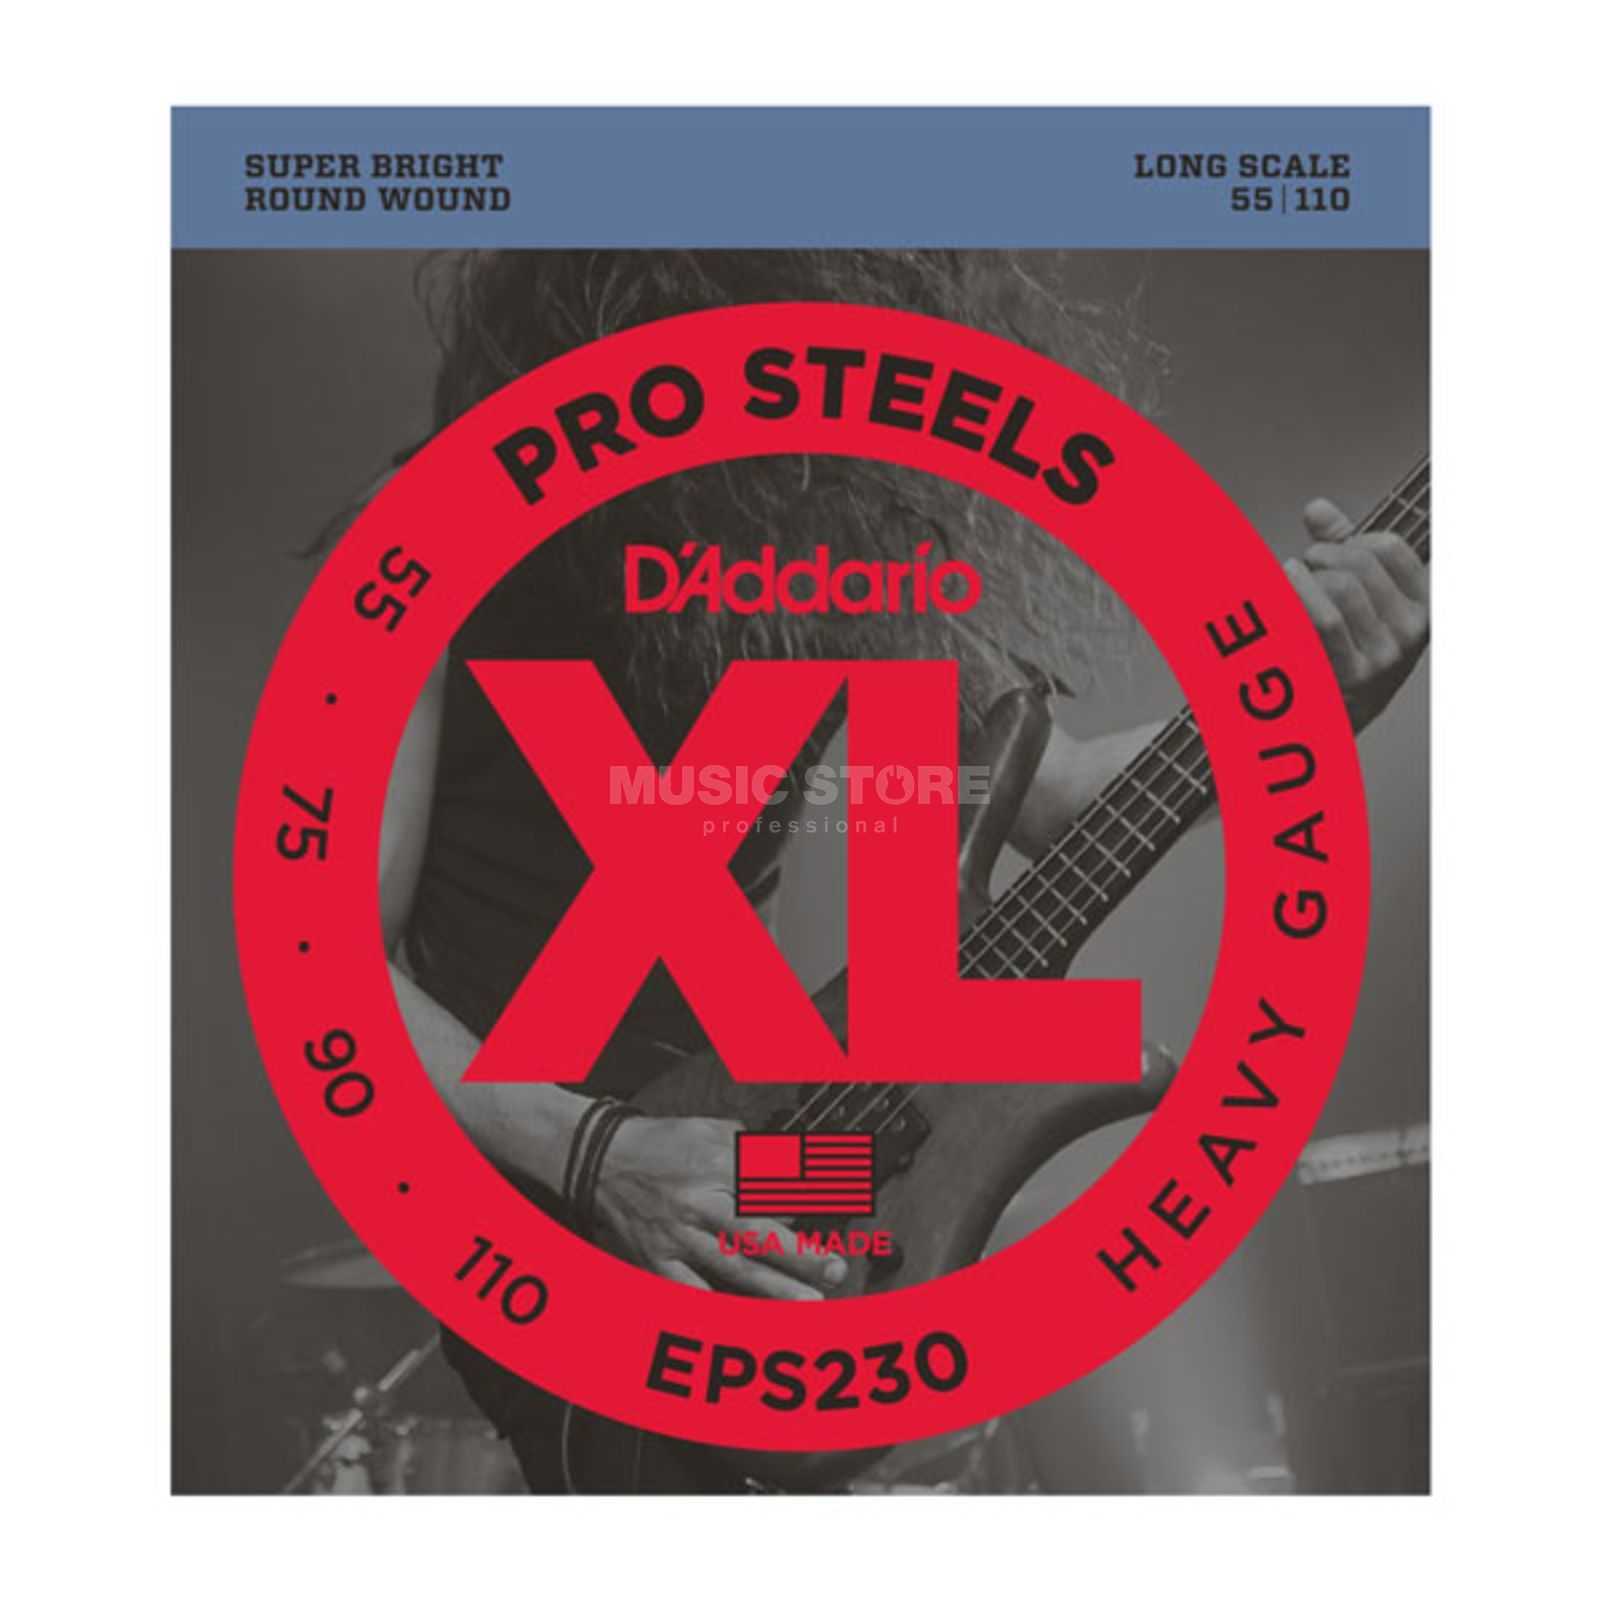 D'Addario Bass Strings Pro Steels 55-110 55-75-90-110, EPS230 Product Image